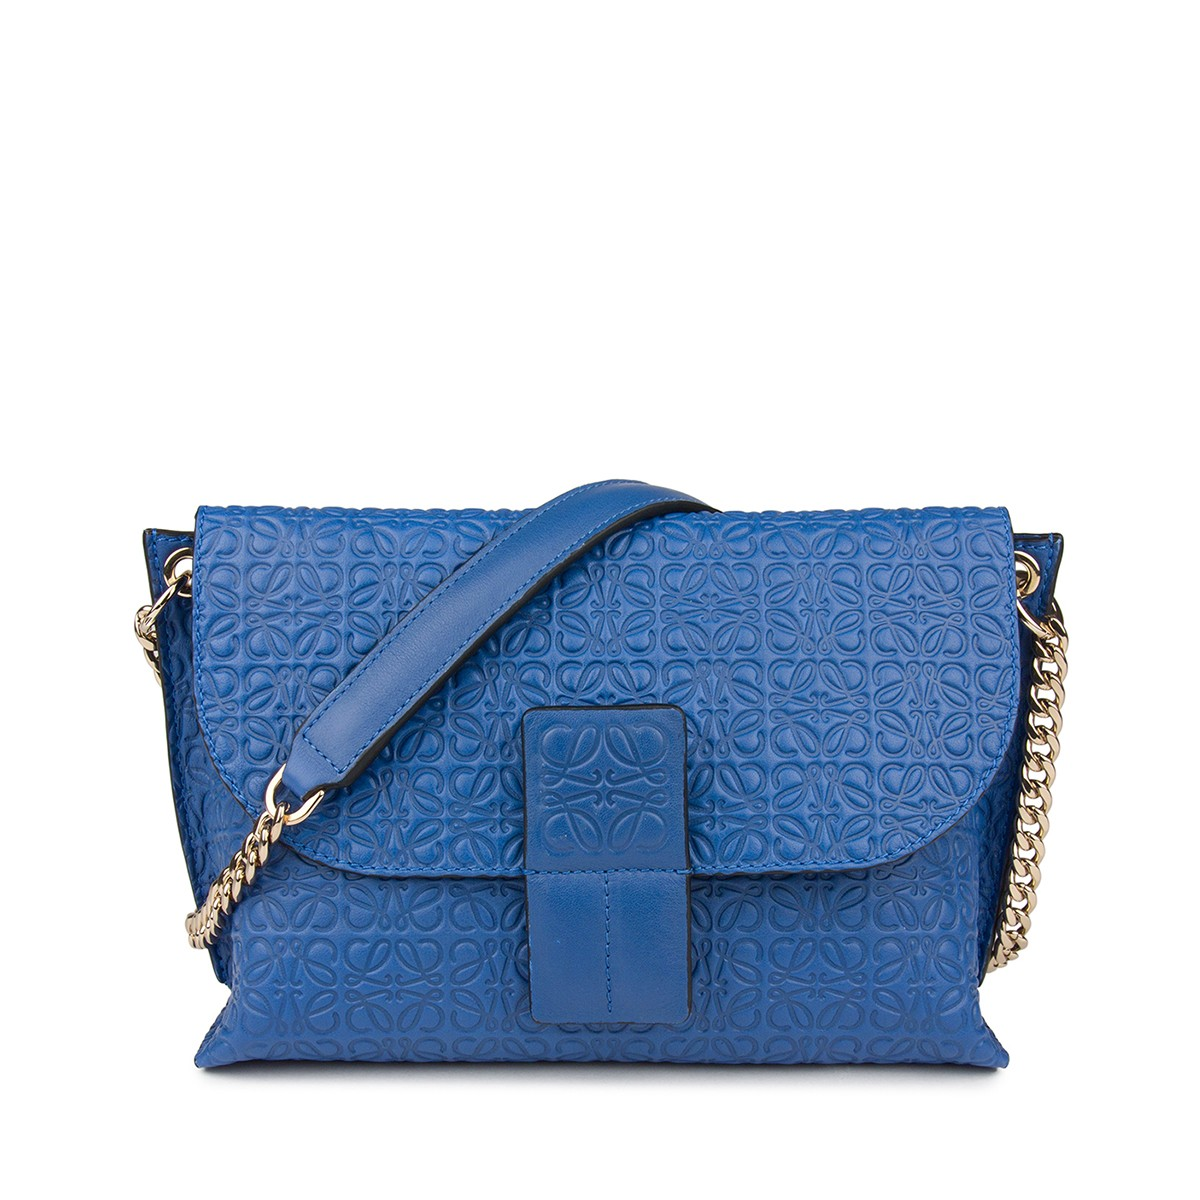 Avenue Bag in Electric Blue